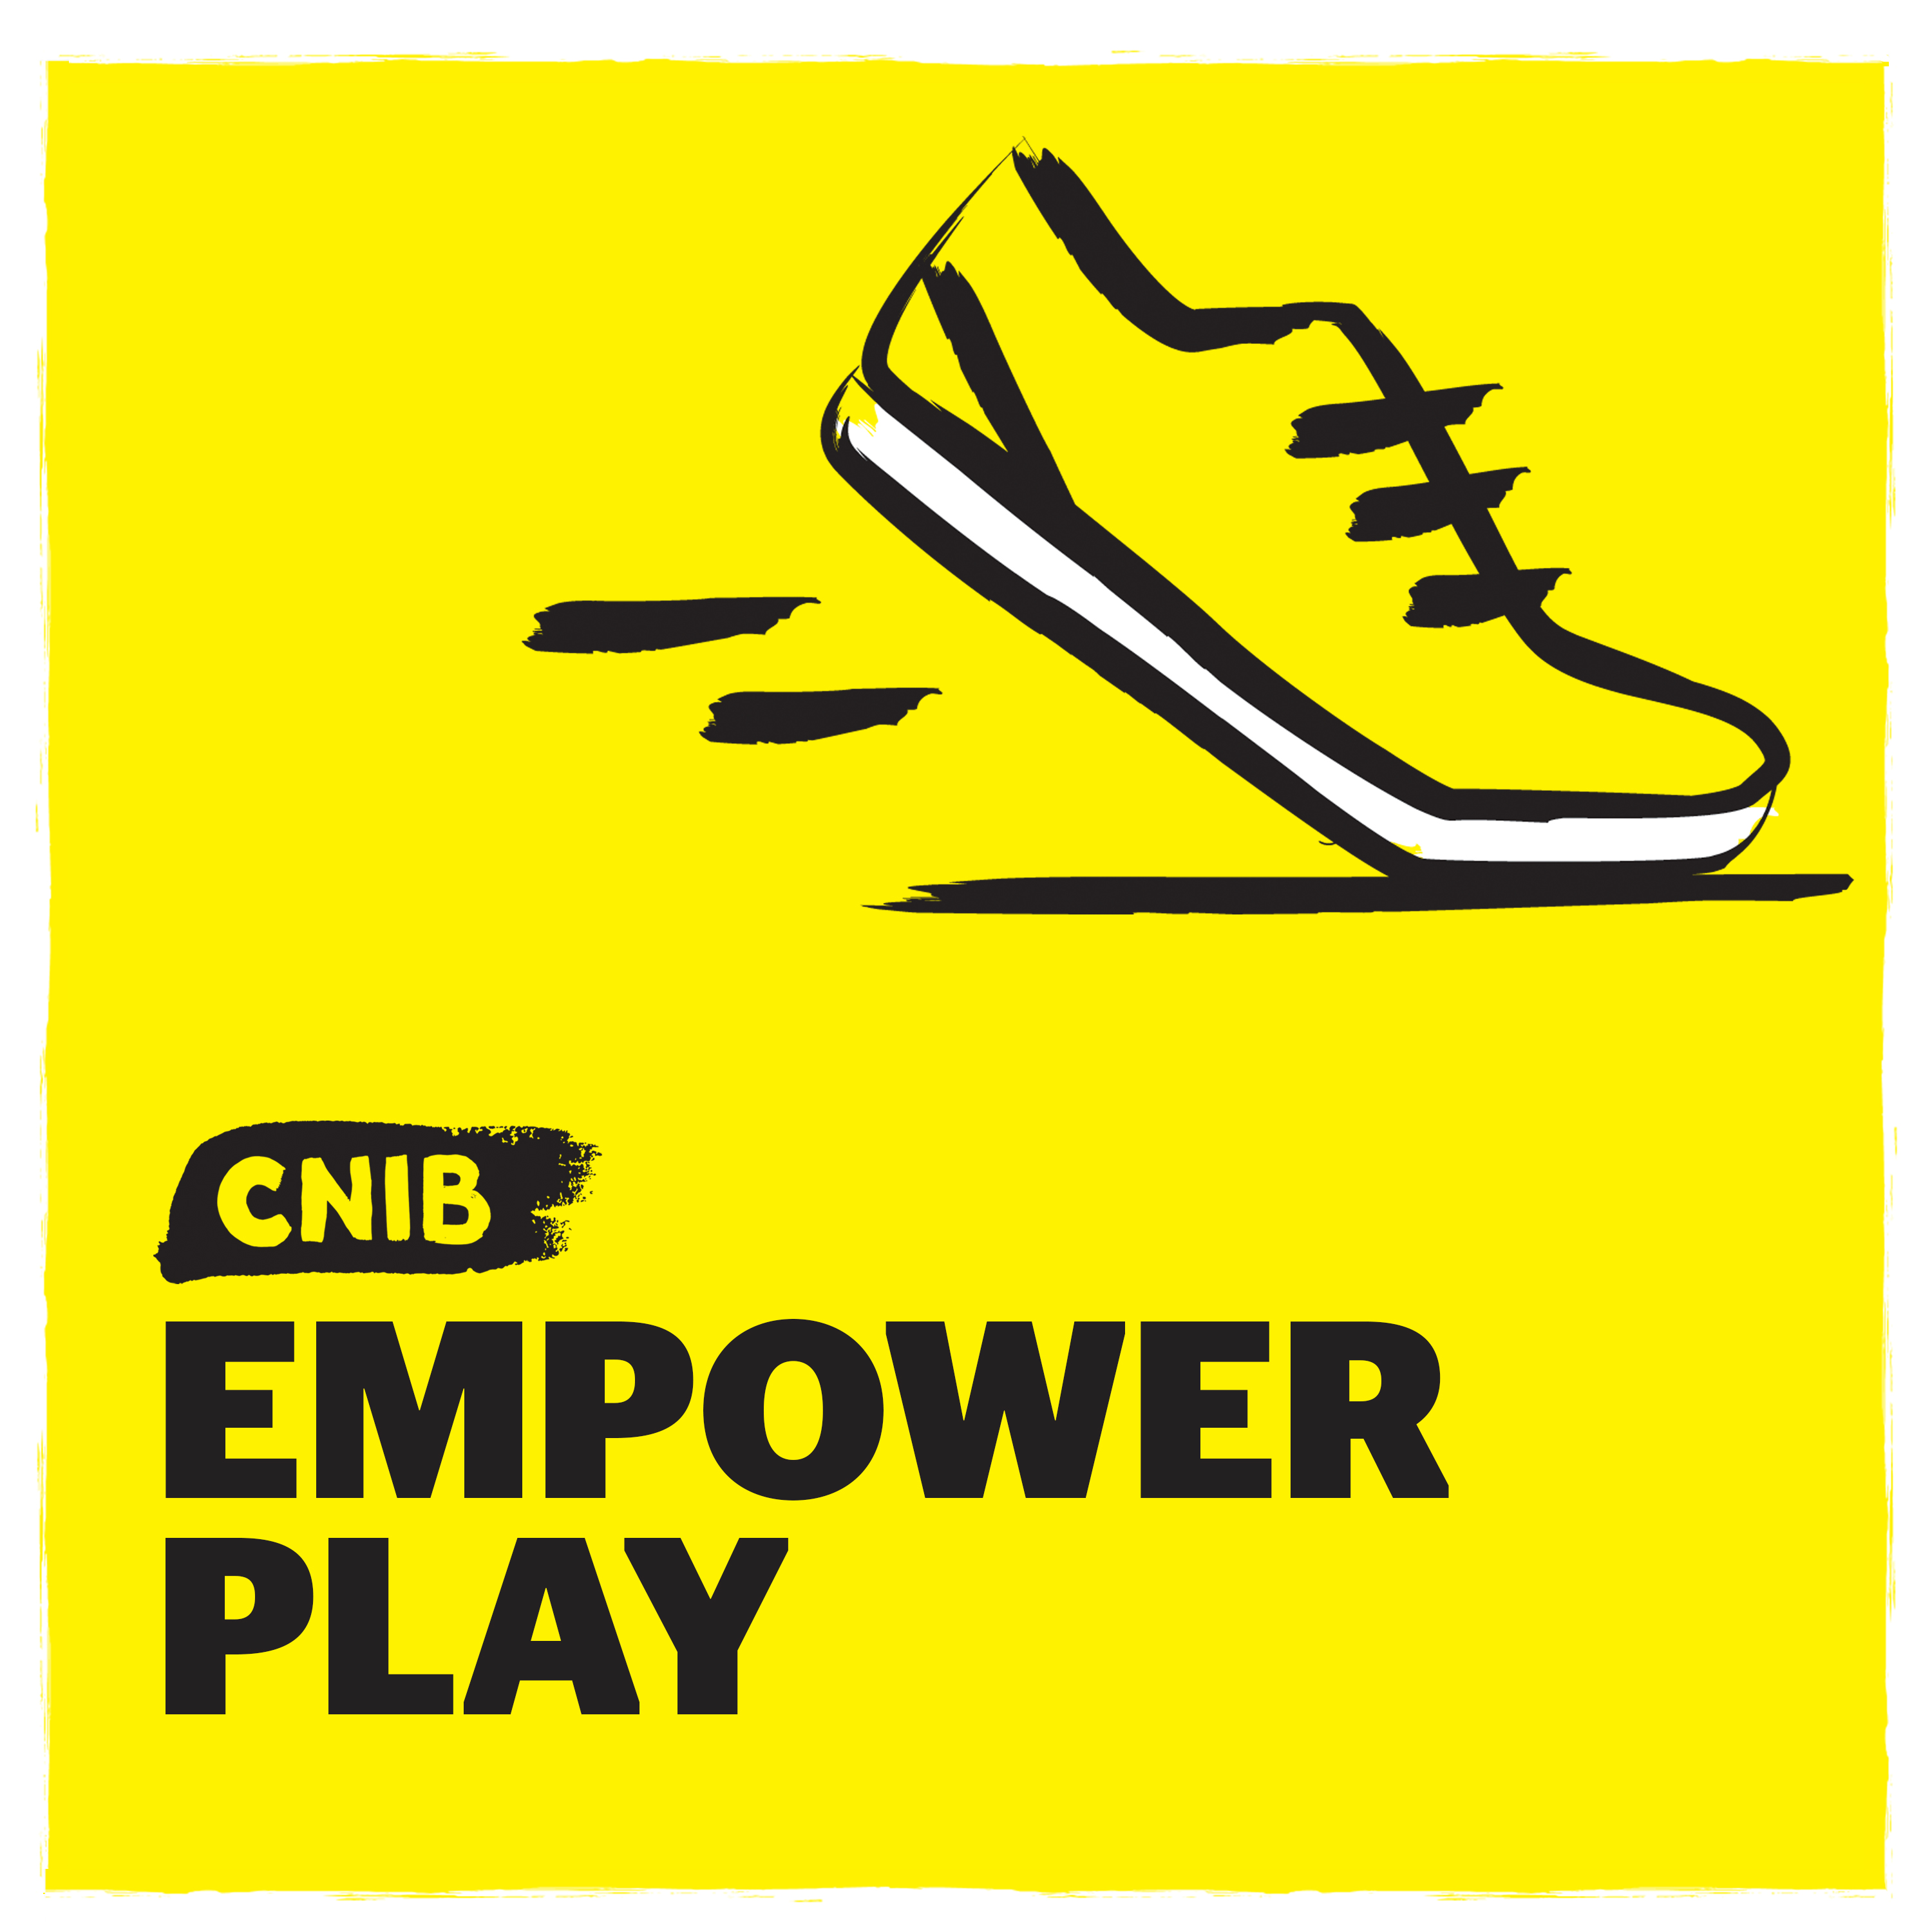 """CNIB EmpowerPlay"" with running shoe icon on yellow."